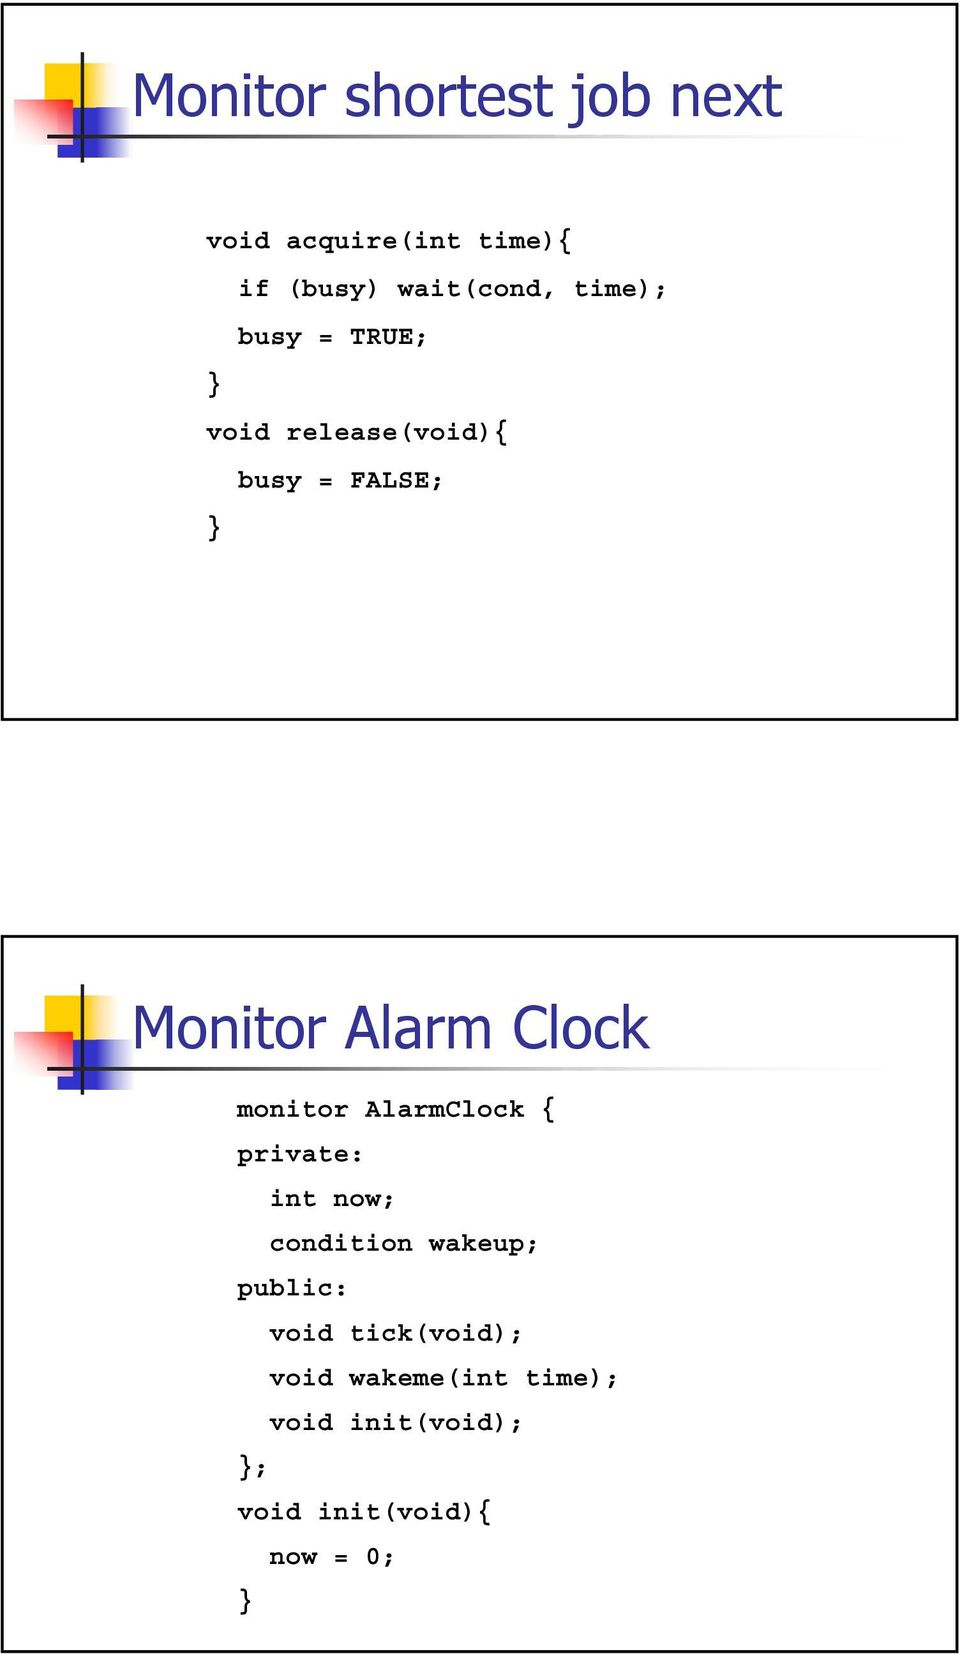 monitor AlarmClock { private: int now; condition wakeup; public: void